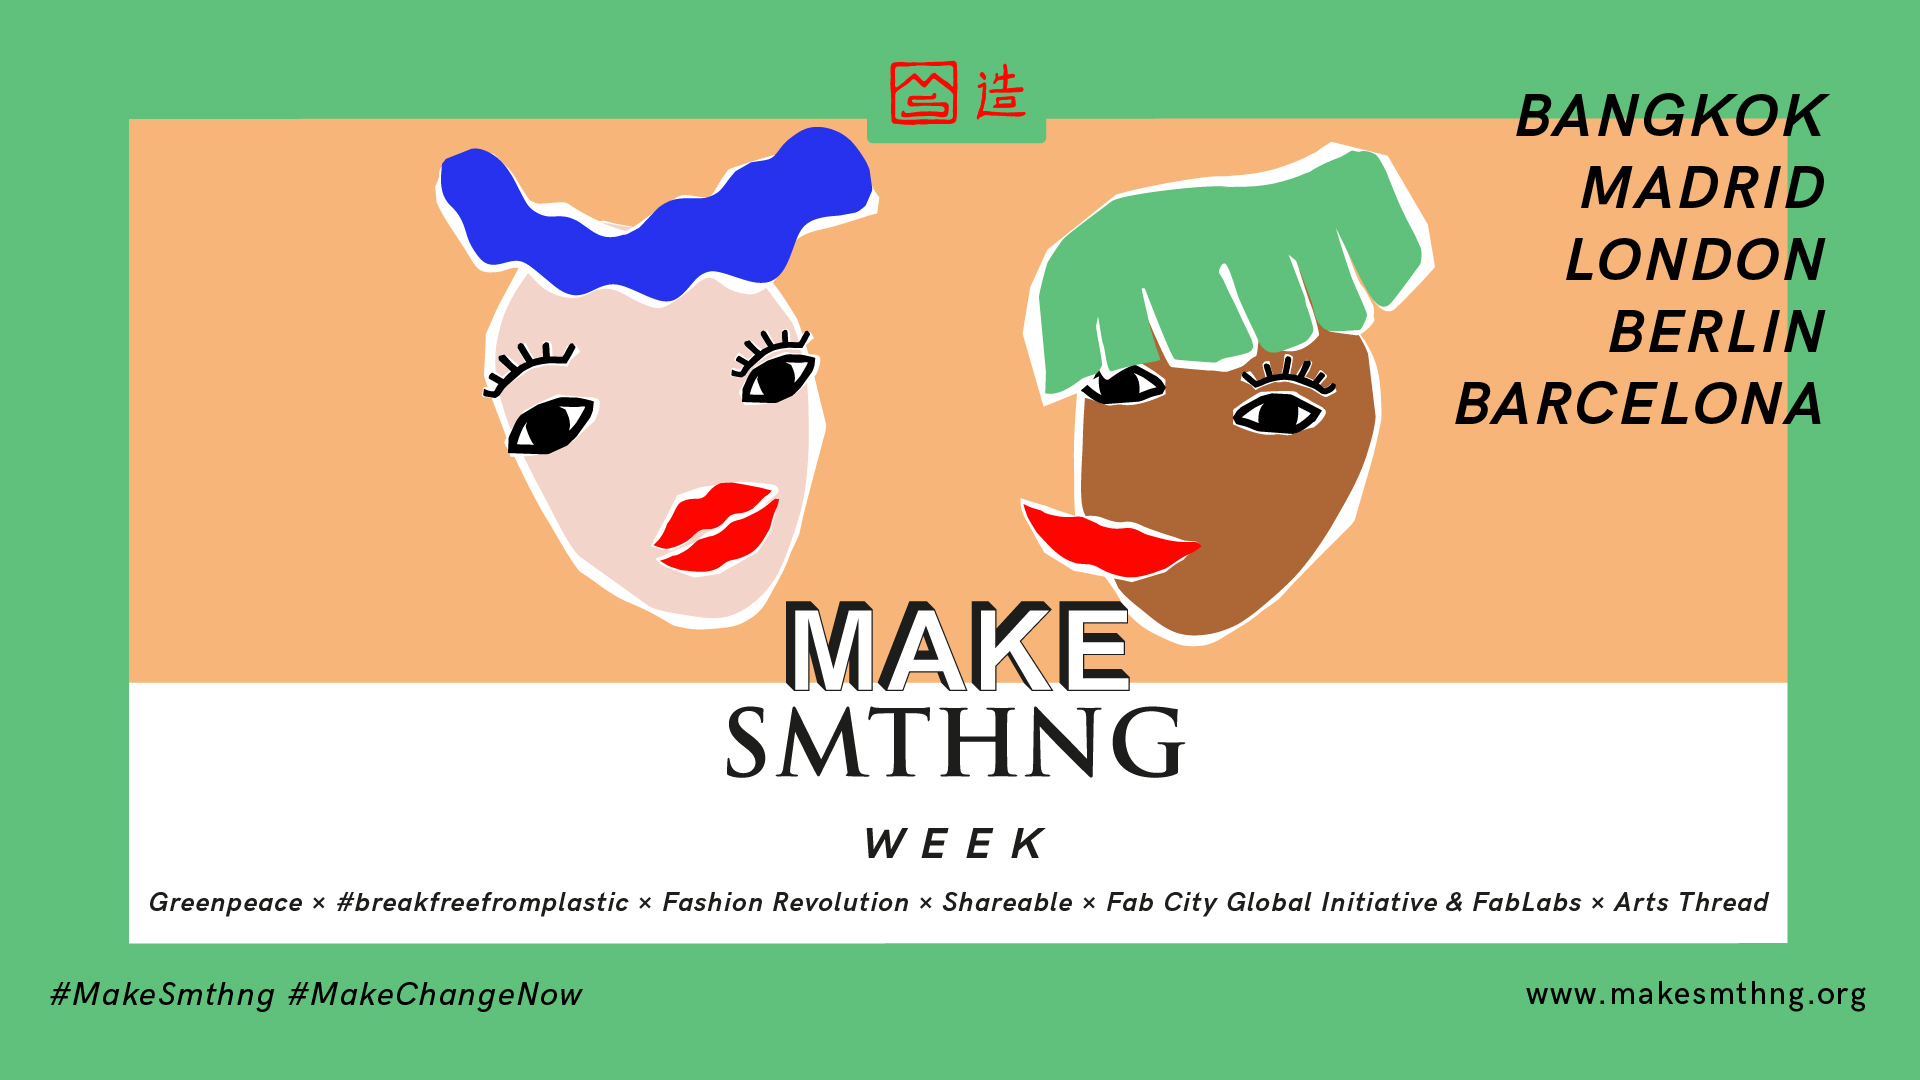 Makerist greenpeace make smthg week 10